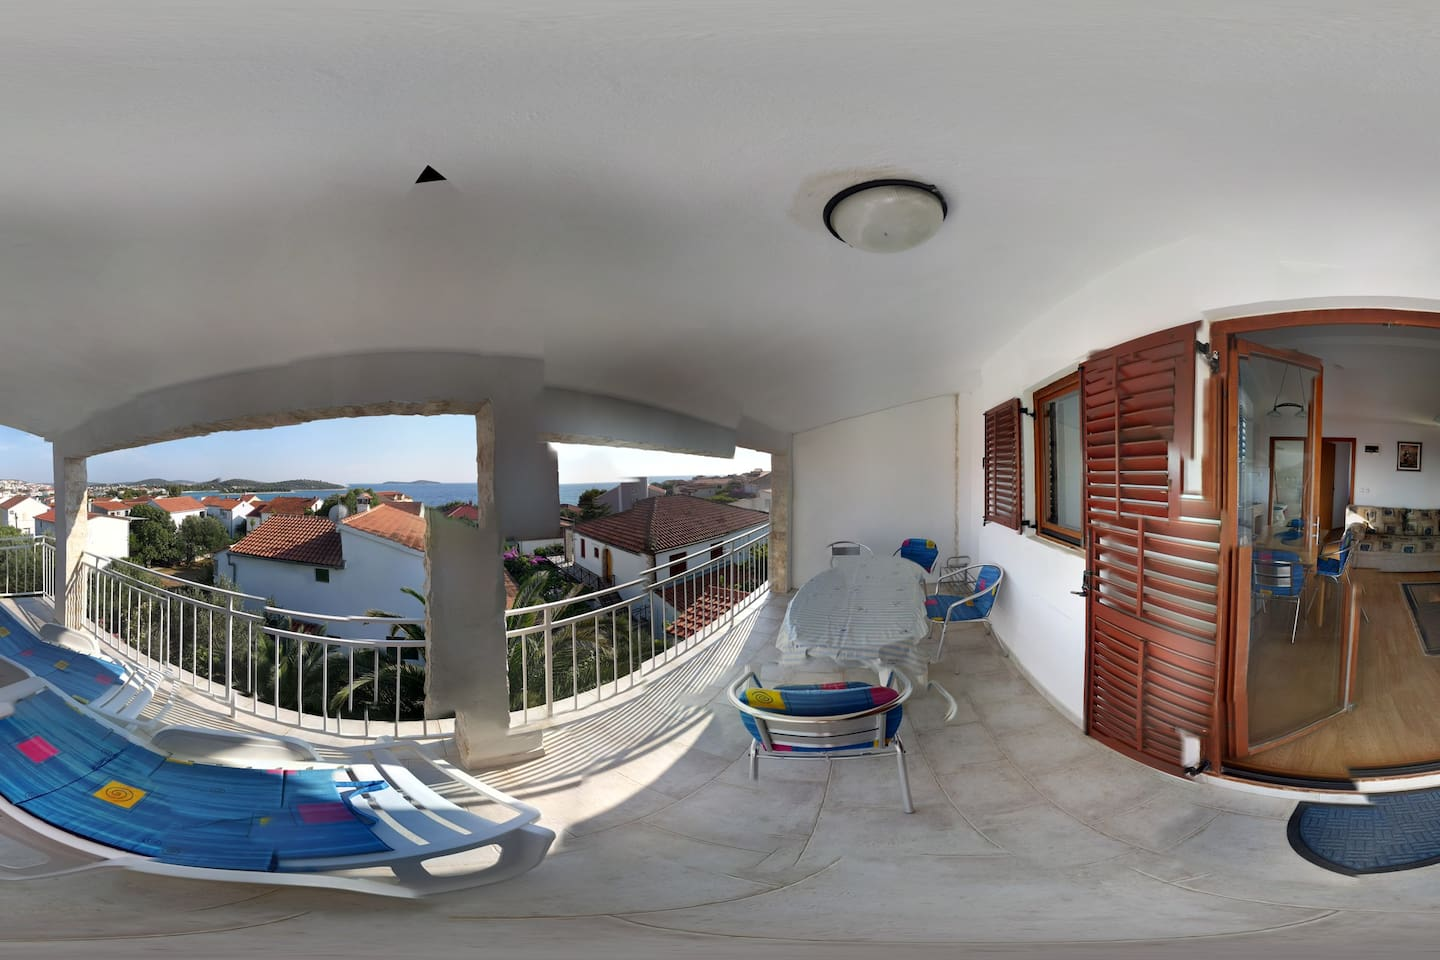 Big terrace connected with the studio apartment, sea view :-) (filmed by fish eye lens)